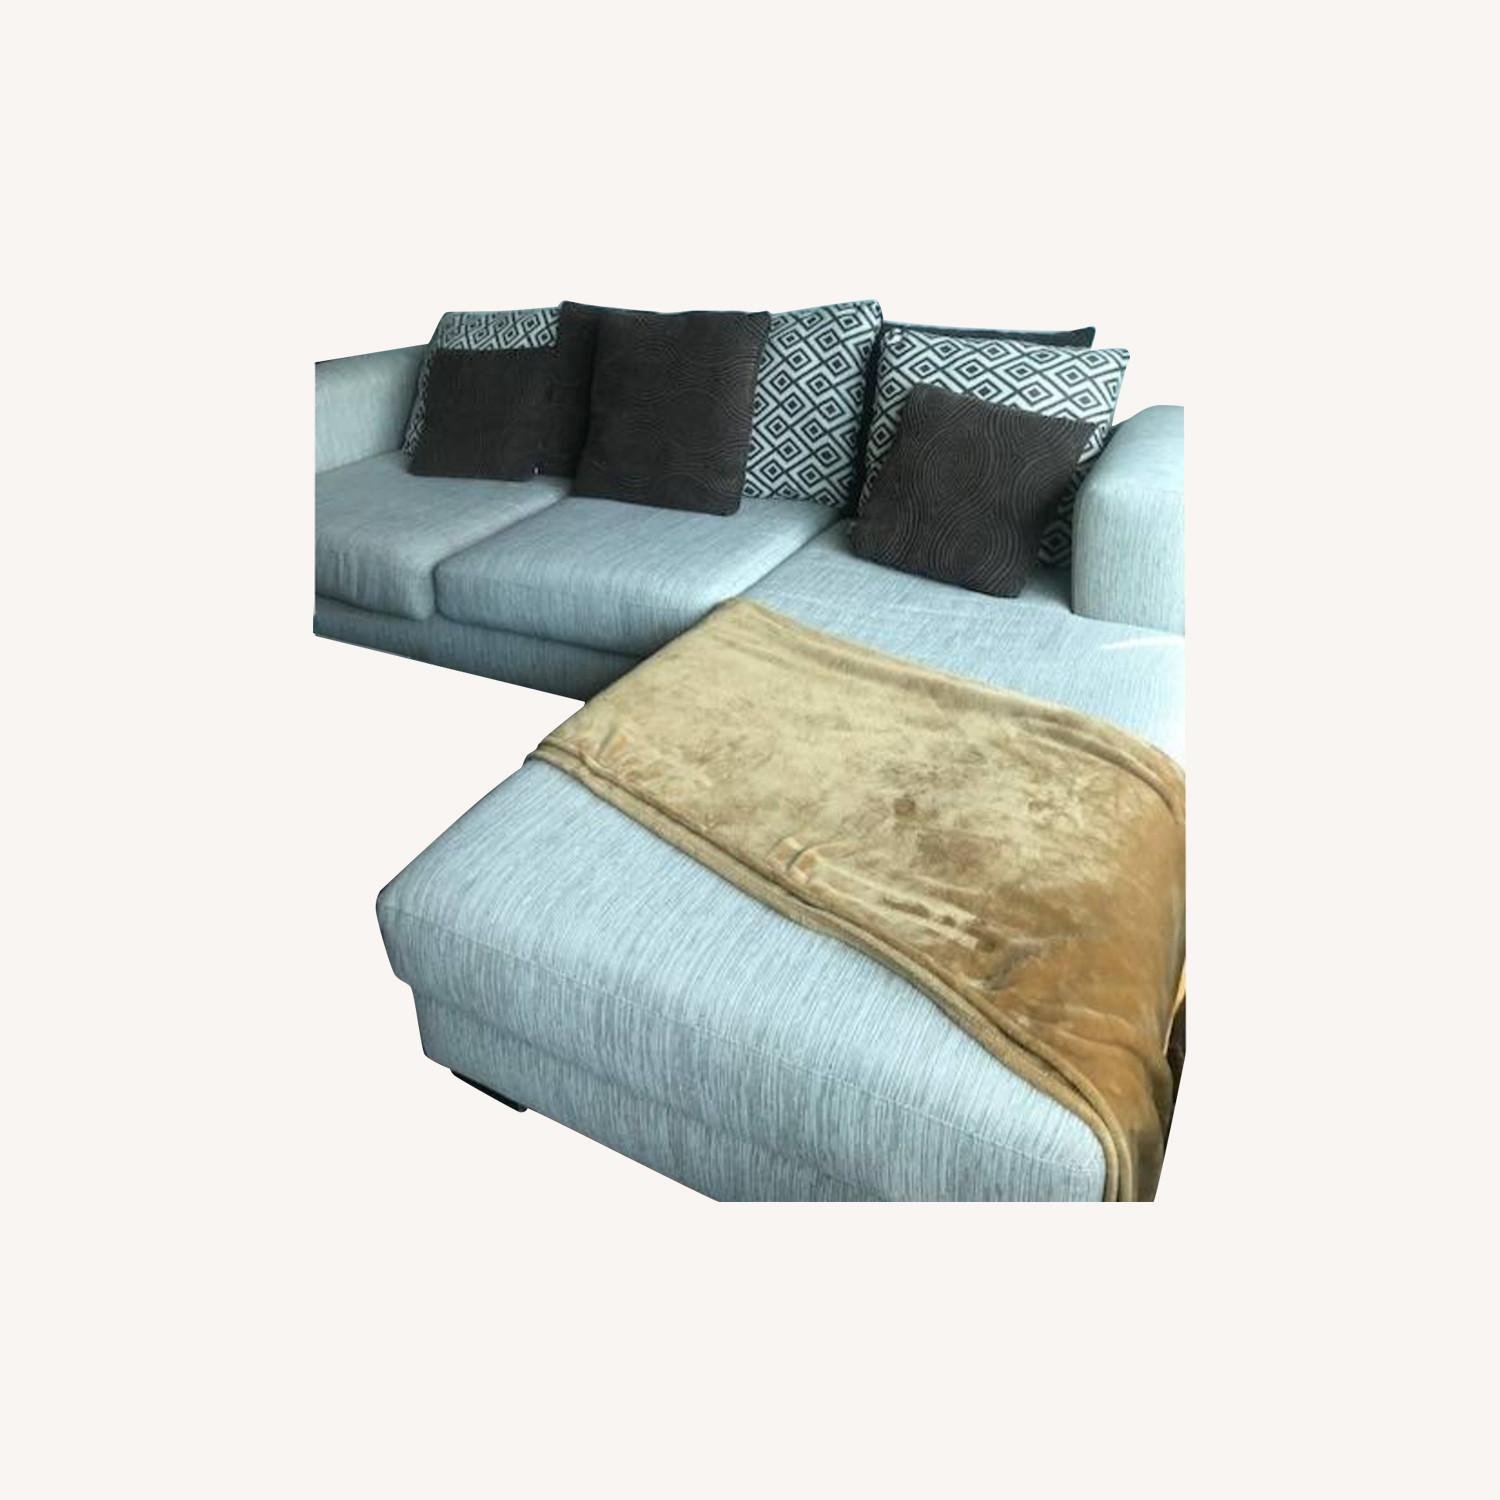 Raymour & Flanigan Urbanity 2 Piece Sectional with Chaise - image-4